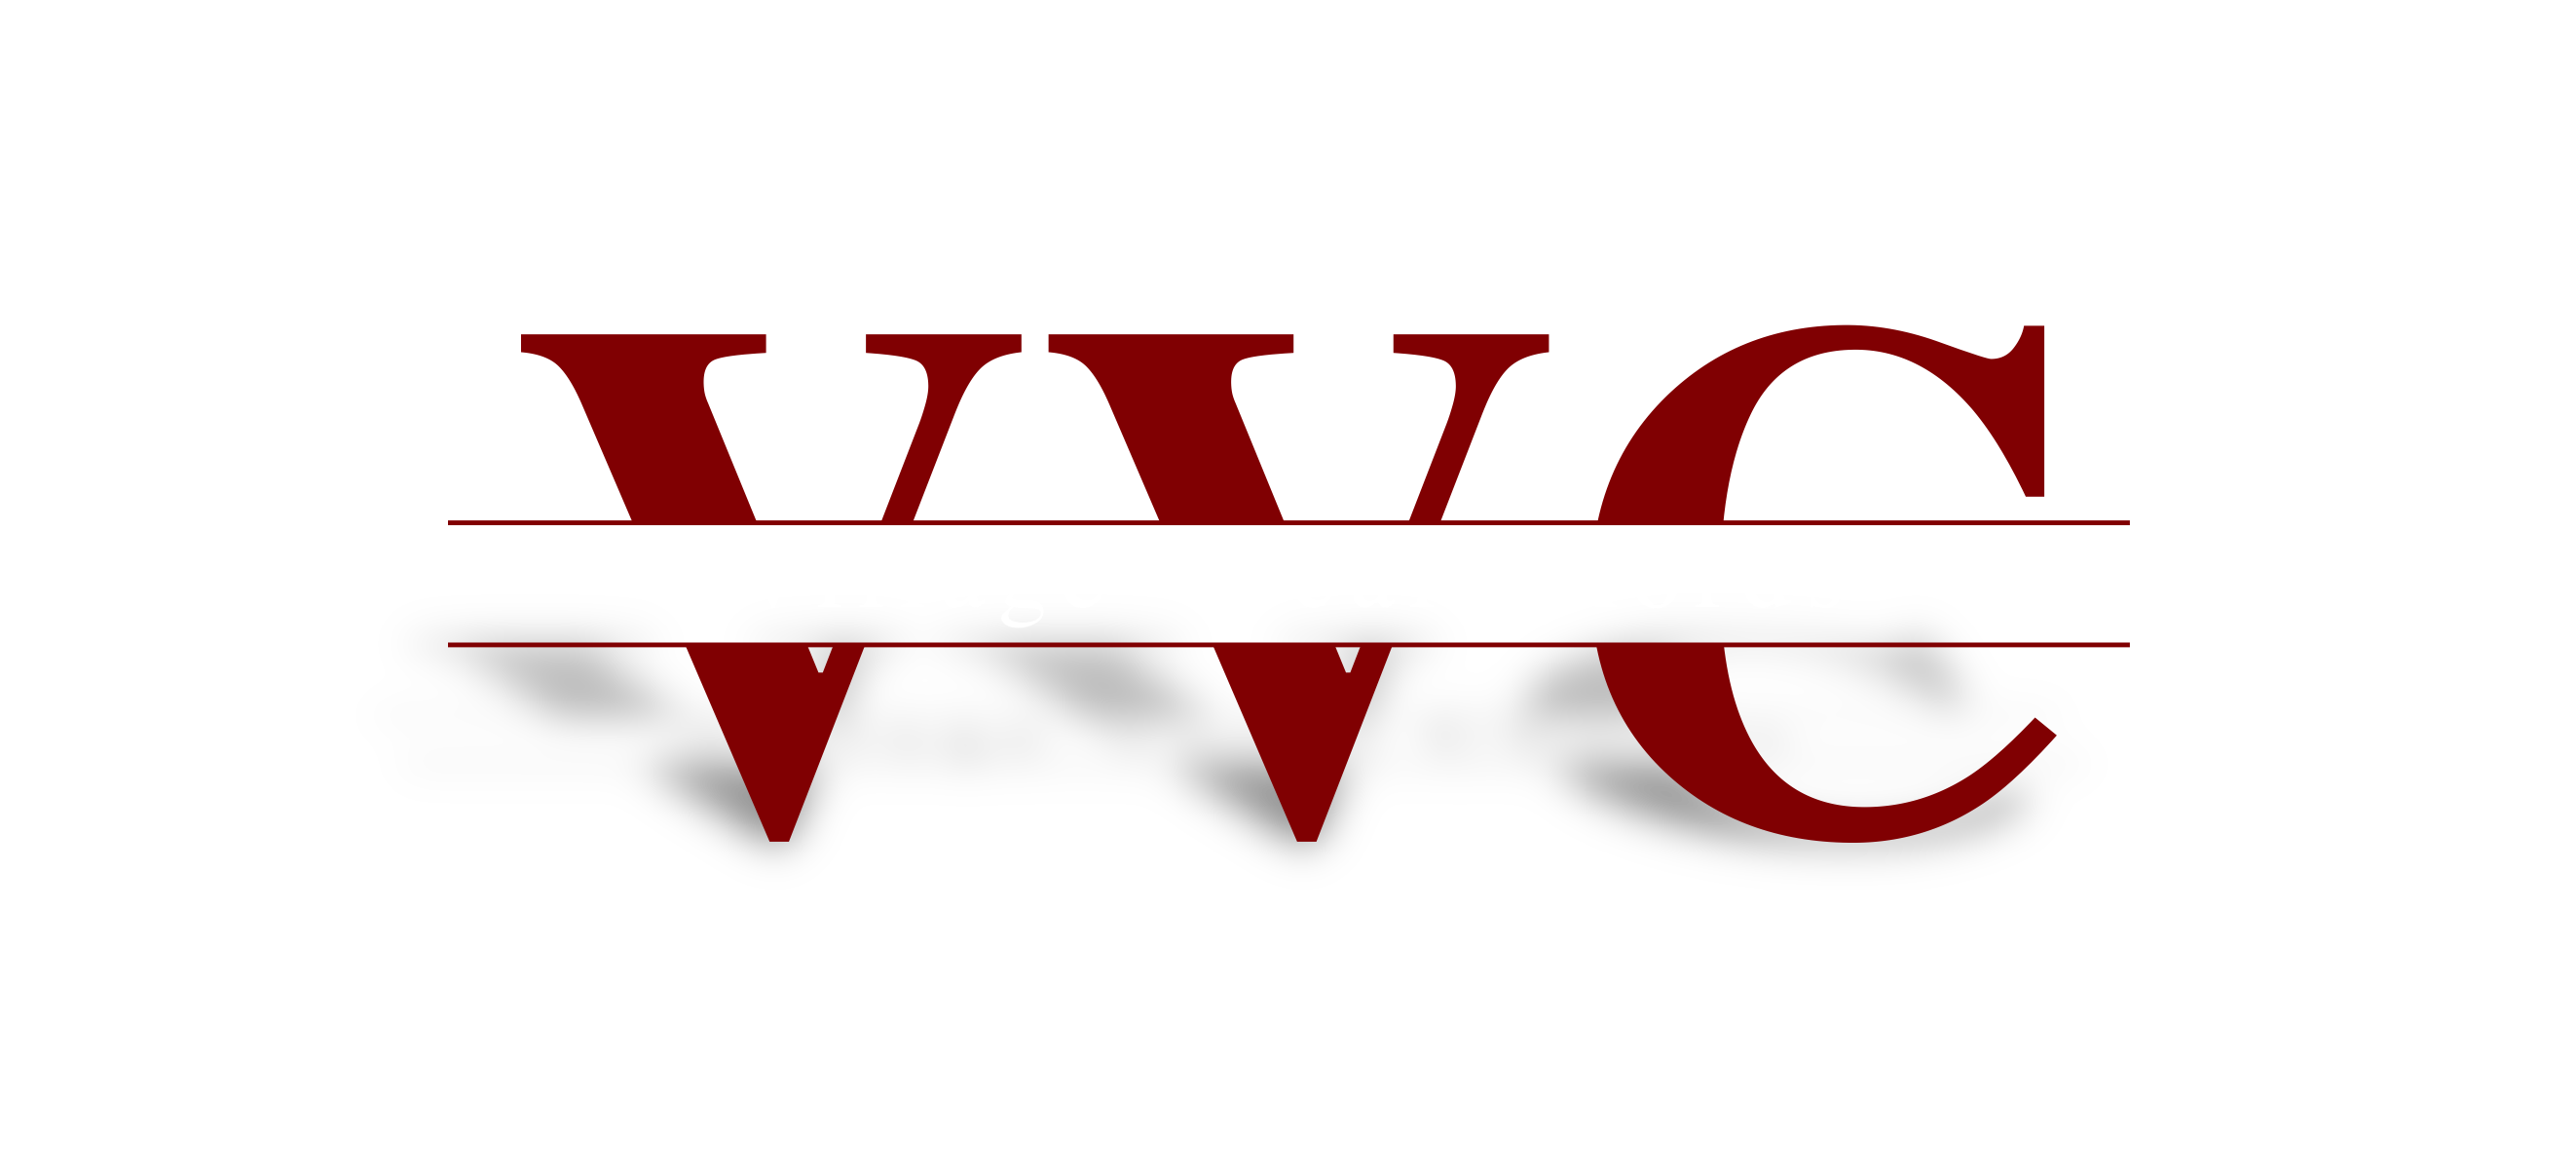 Village Vocal Chords